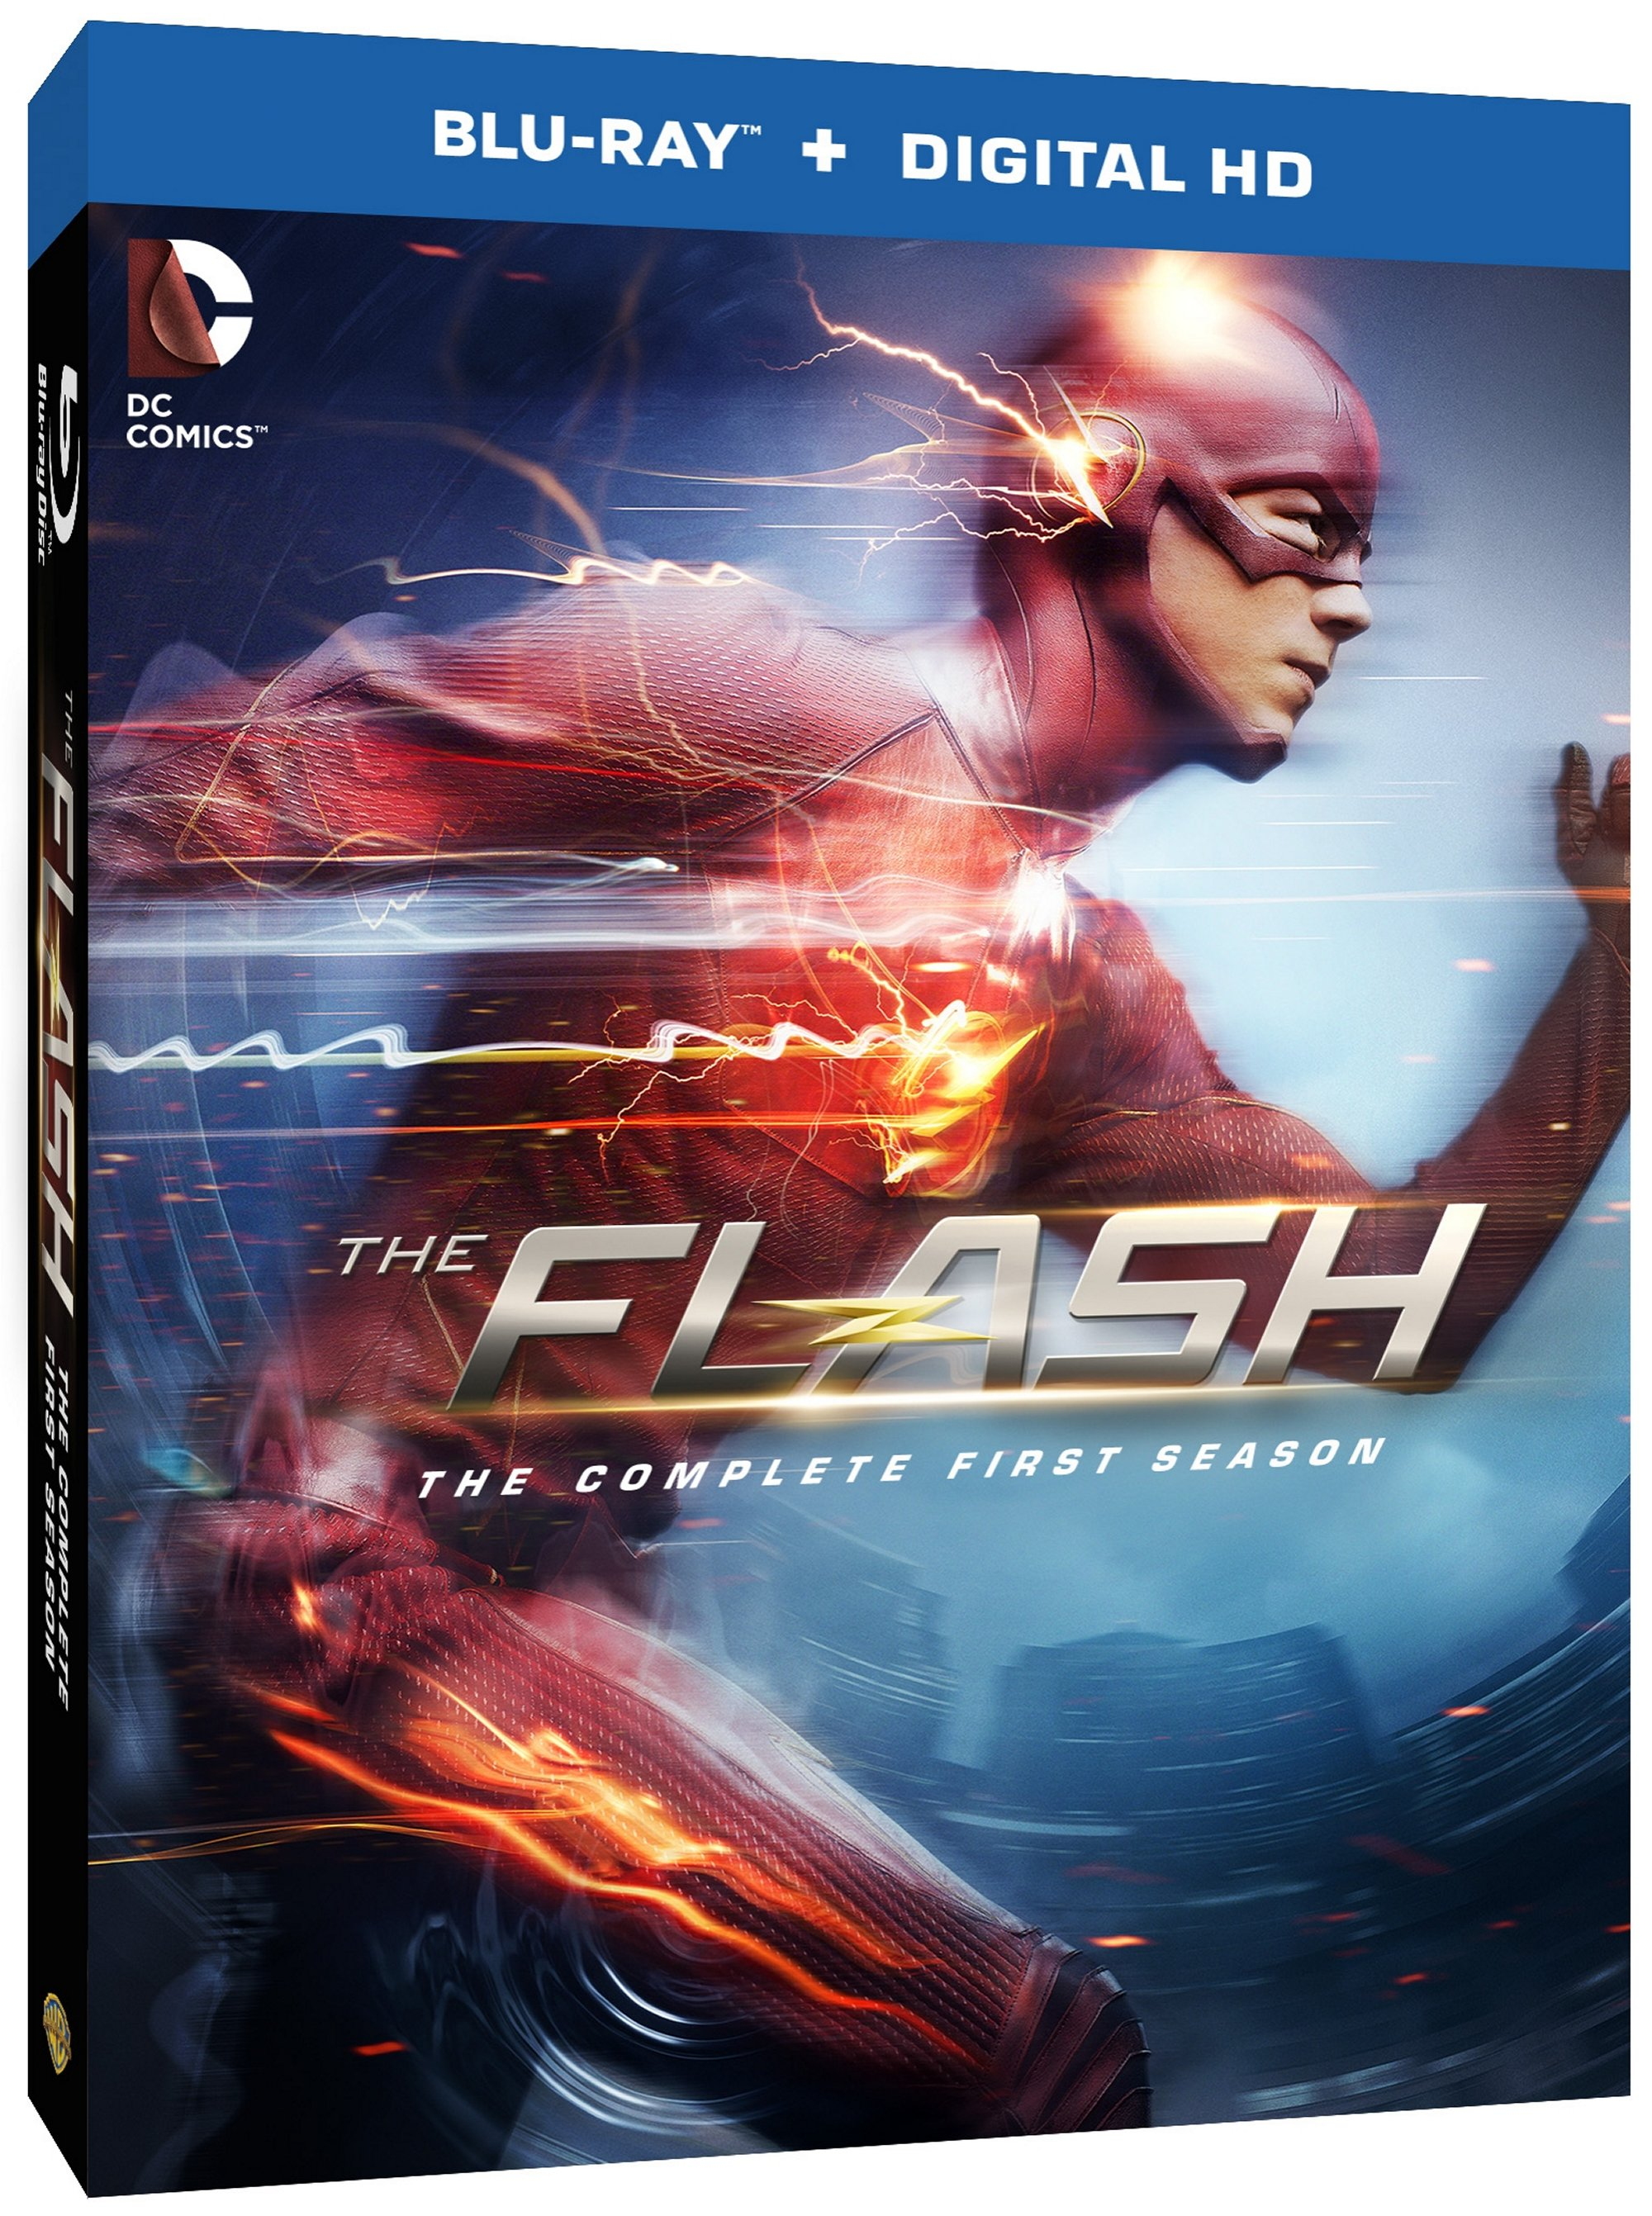 The Flash Season One  Blu-ray Review